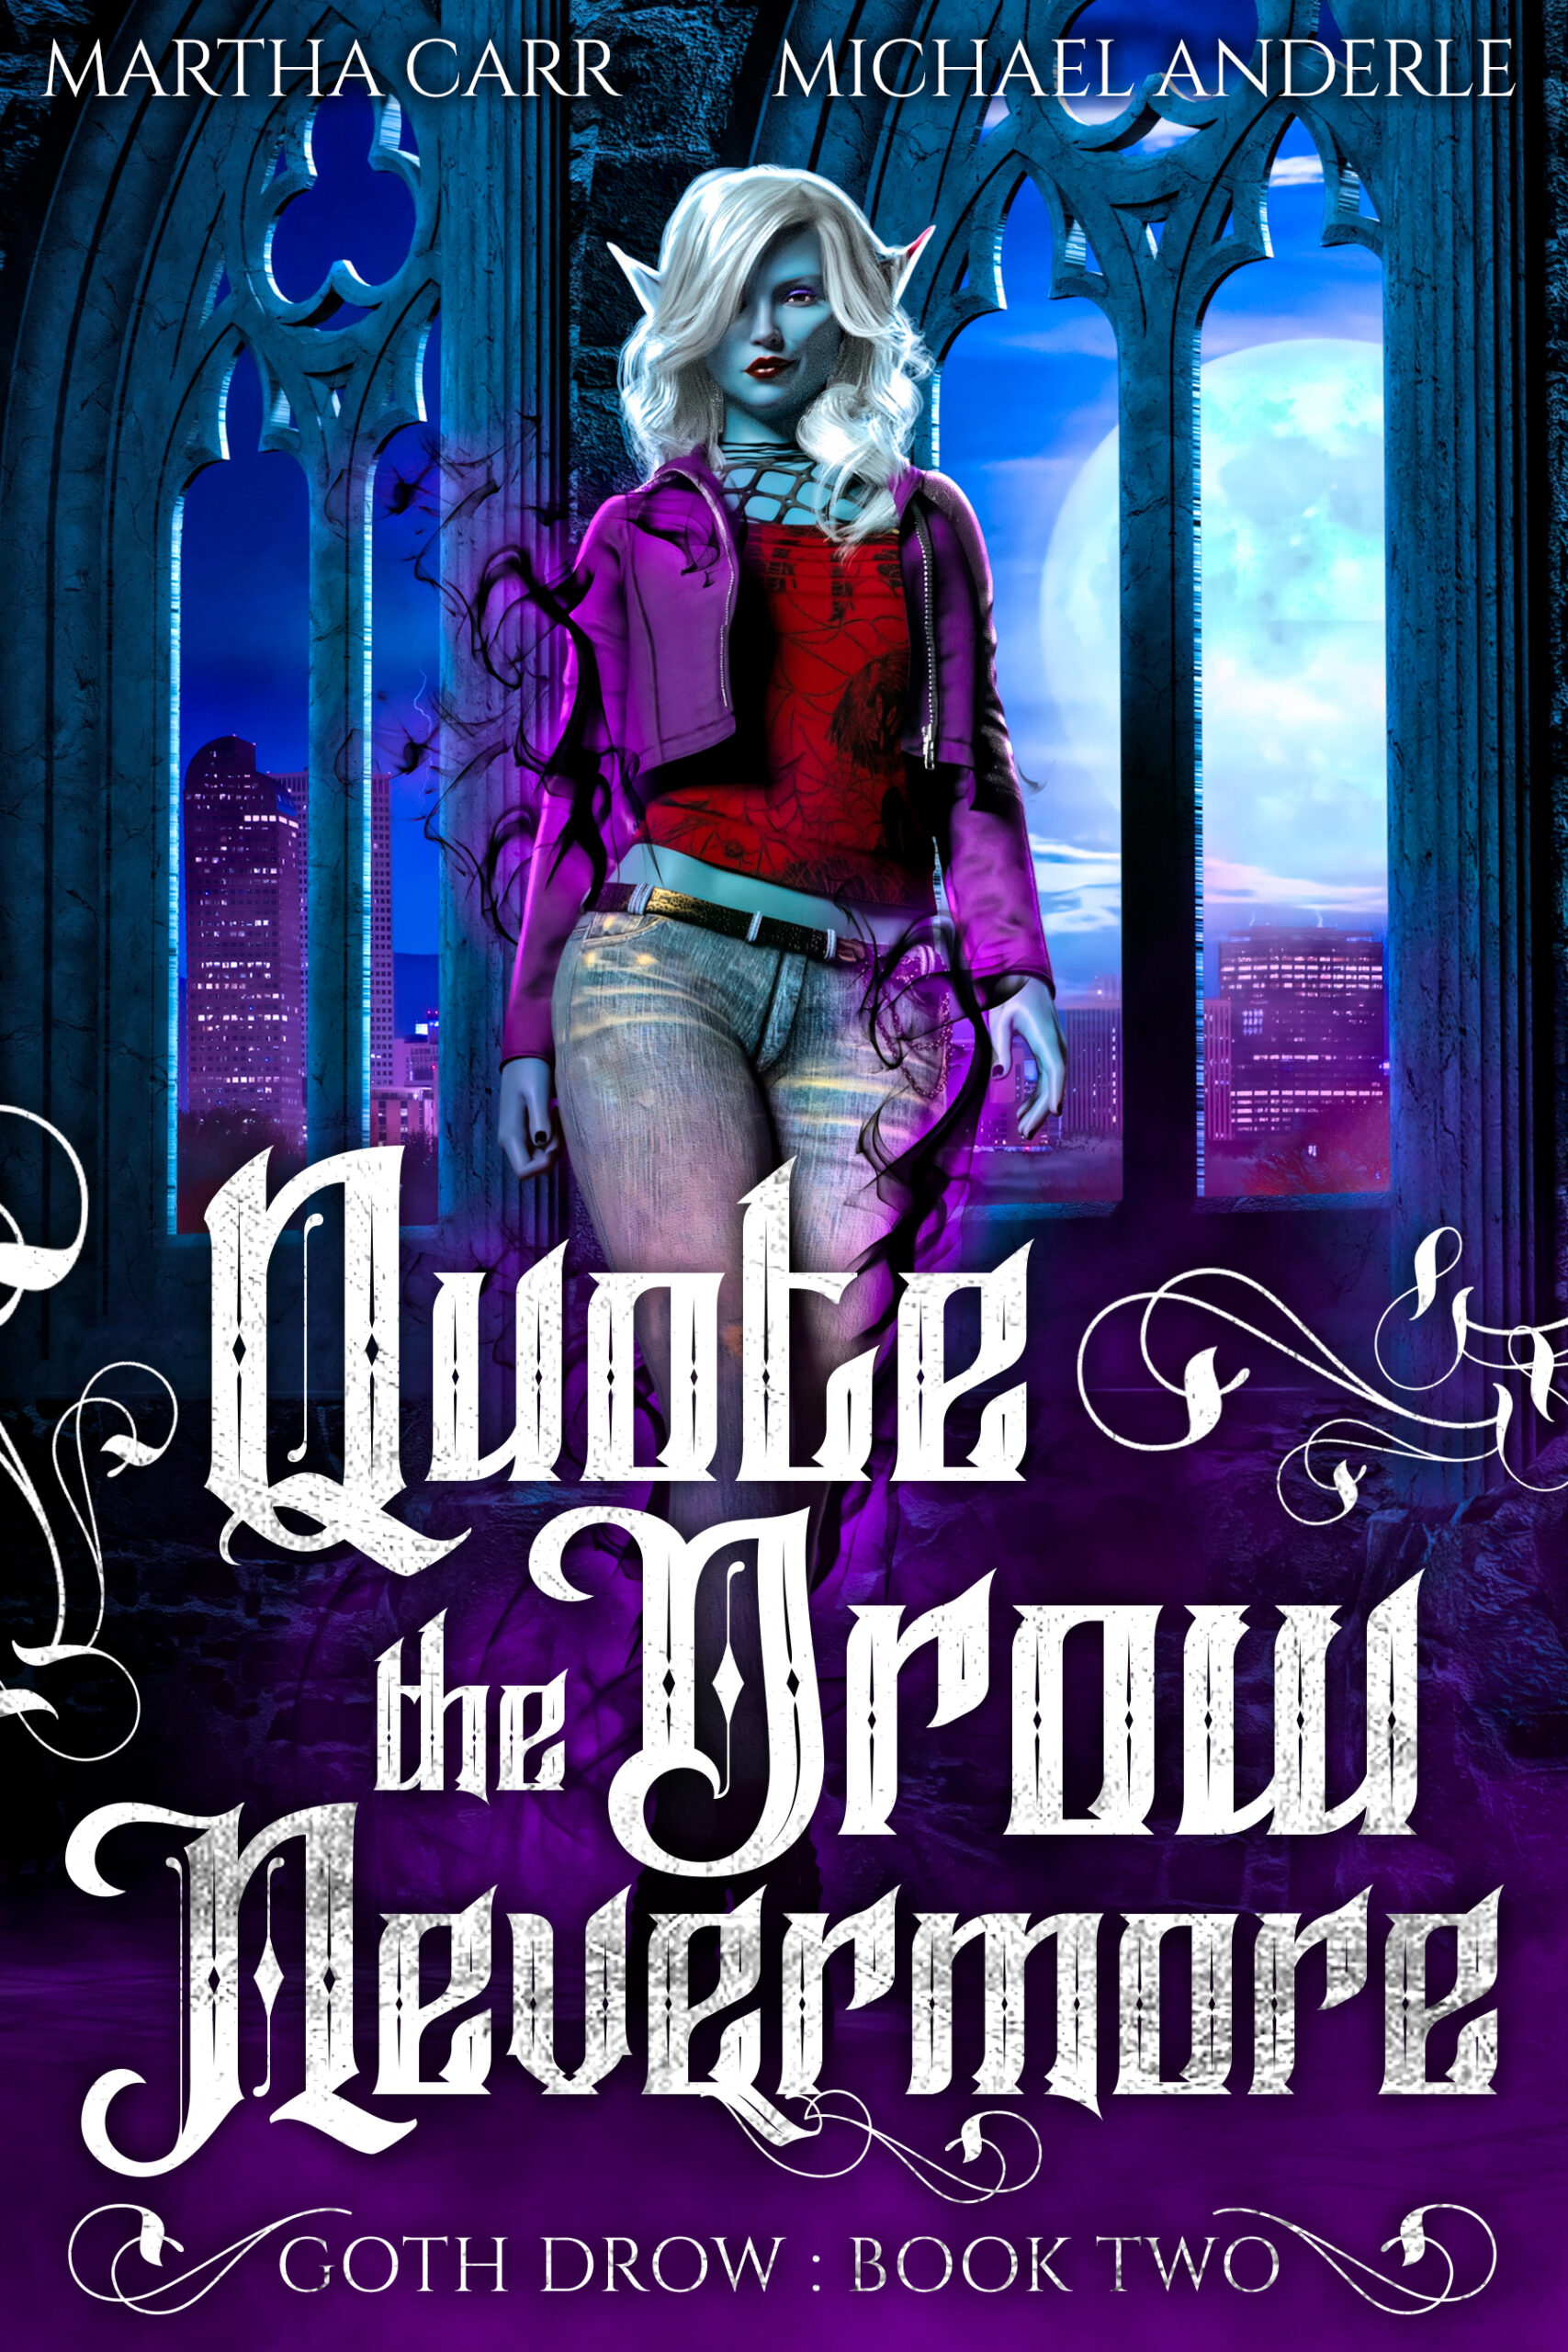 Goth Drow Book 2: Quote the Drow Nevermore